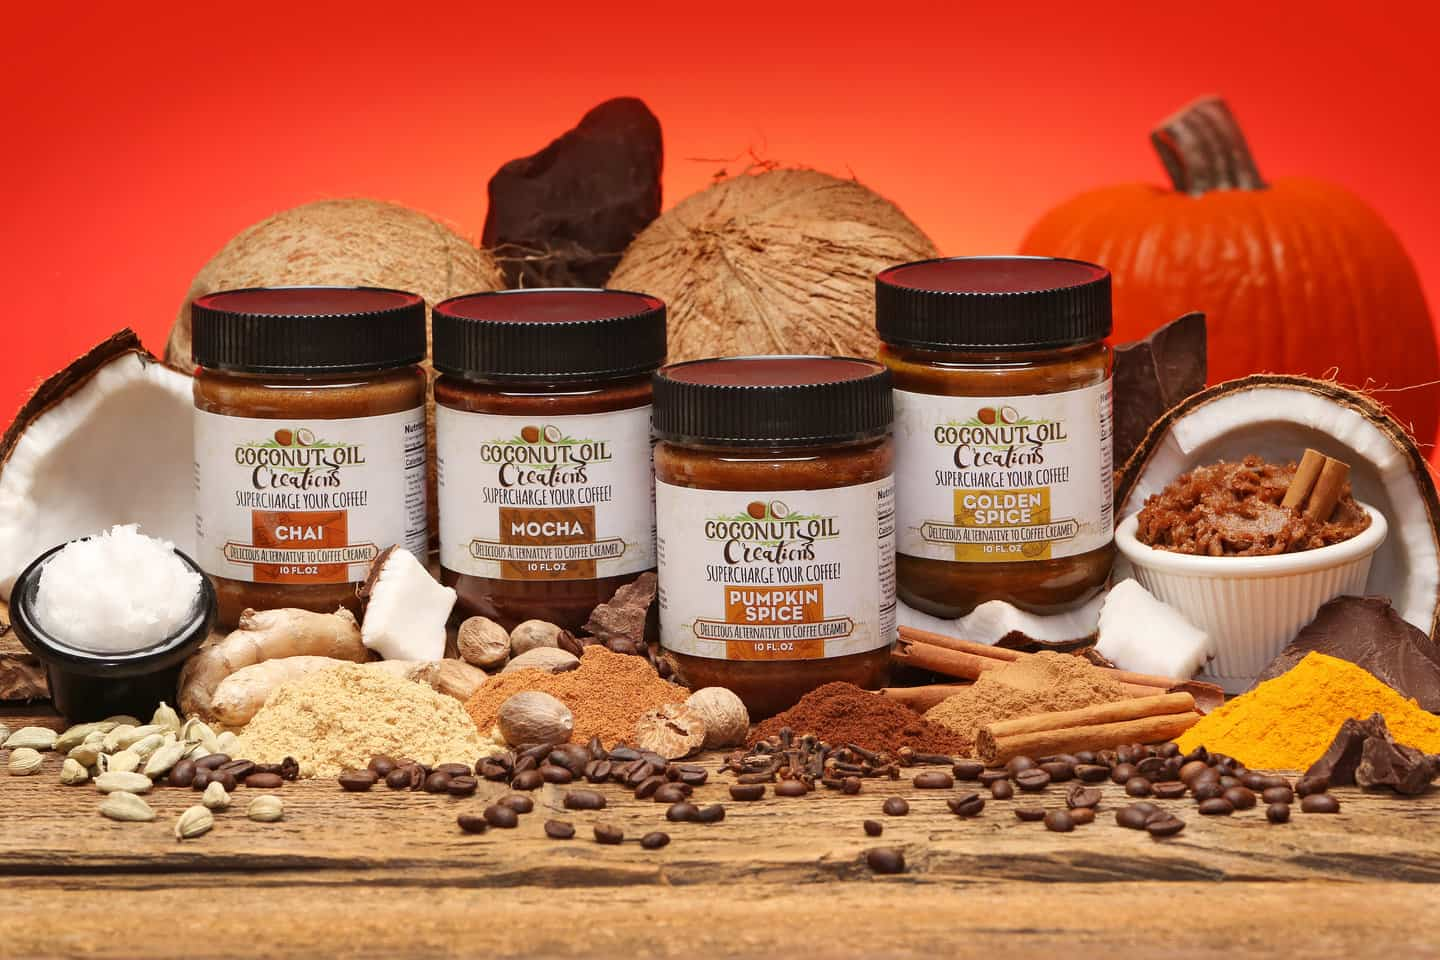 Dave Bryk rsz 507a9352 all 4 - Introducing Coconut Oil Creations: Supercharge Your Coffee and more with Delicious, Spice Infused Coconut Oil